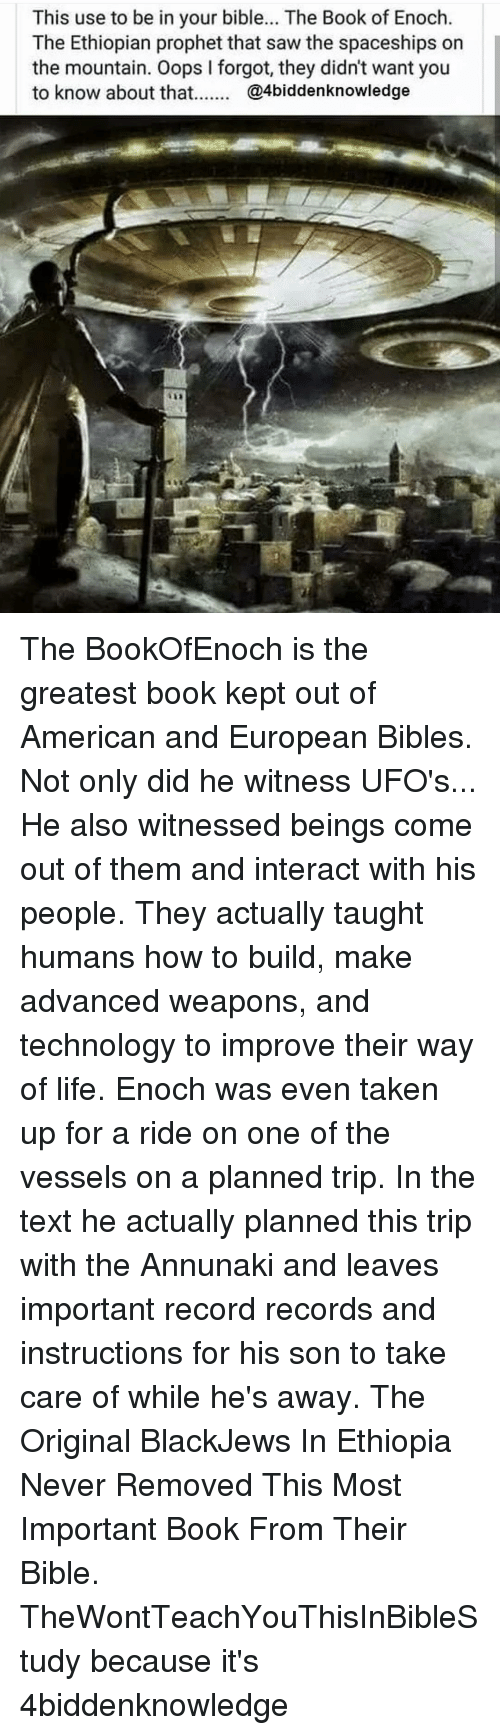 Ethiopians: This use to be in your bible... The Book of Enoch.  The Ethiopian prophet that saw the spaceships on  the mountain. Oops l forgot, they didn't want you  to know about that  @4biddenknowledge The BookOfEnoch is the greatest book kept out of American and European Bibles. Not only did he witness UFO's... He also witnessed beings come out of them and interact with his people. They actually taught humans how to build, make advanced weapons, and technology to improve their way of life. Enoch was even taken up for a ride on one of the vessels on a planned trip. In the text he actually planned this trip with the Annunaki and leaves important record records and instructions for his son to take care of while he's away. The Original BlackJews In Ethiopia Never Removed This Most Important Book From Their Bible. TheWontTeachYouThisInBibleStudy because it's 4biddenknowledge